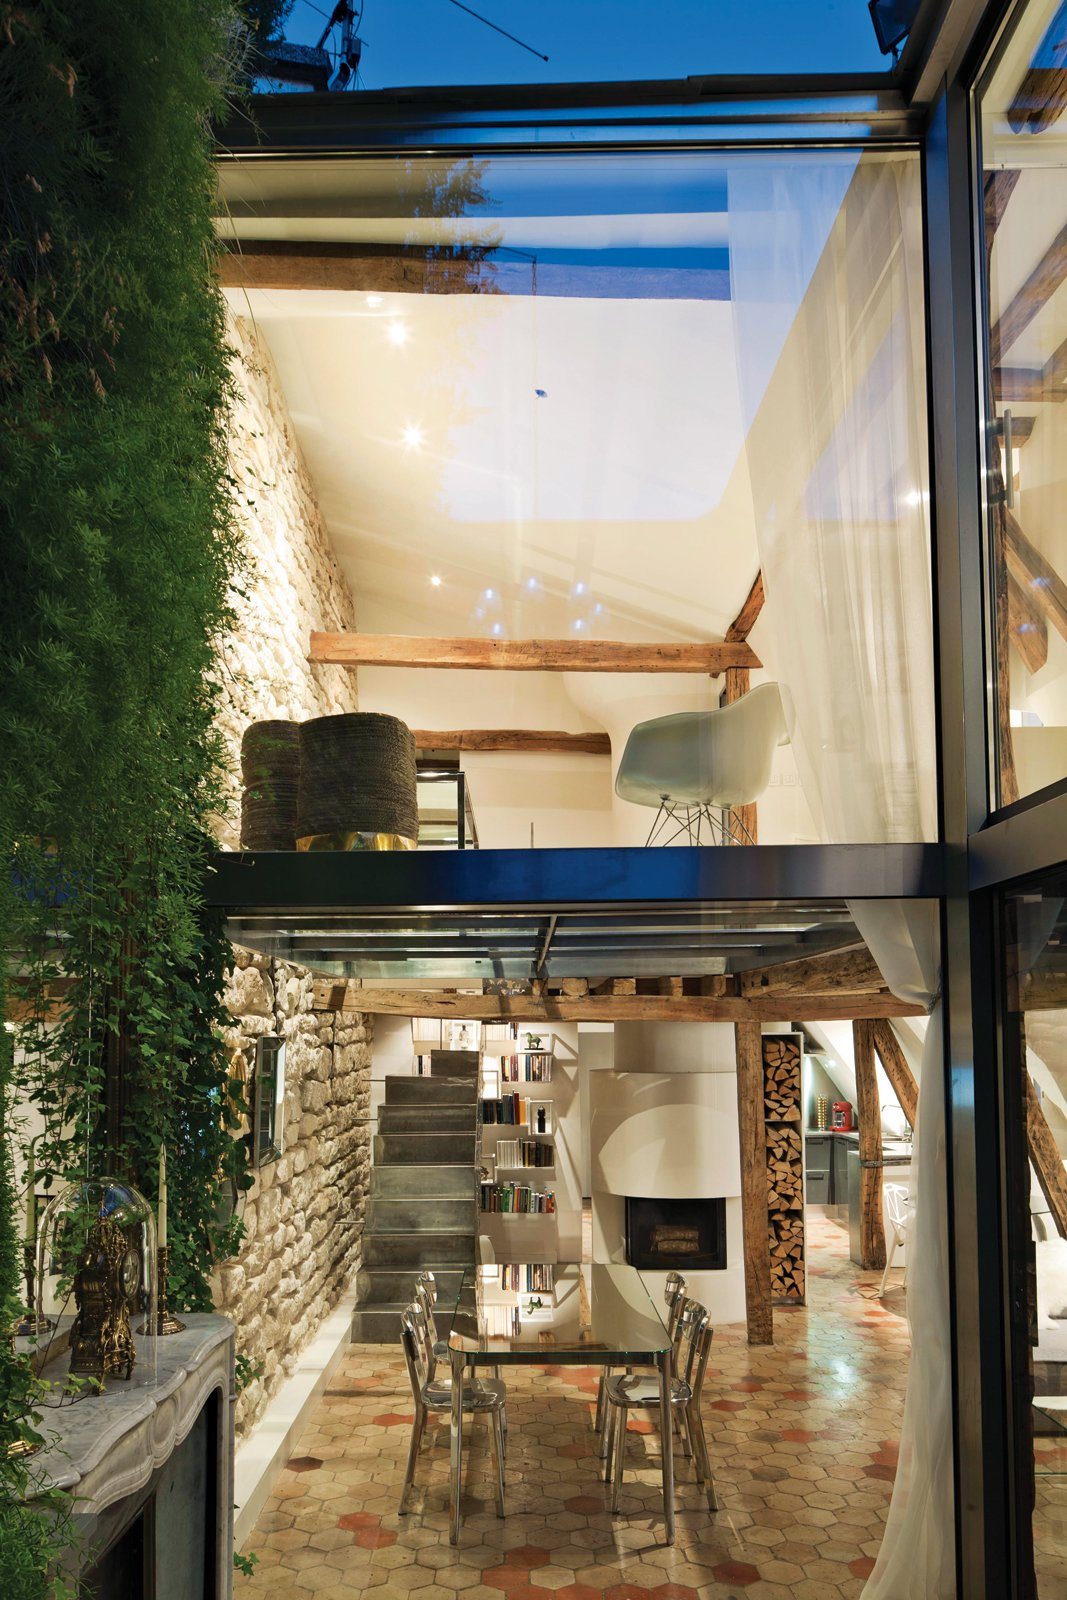 The dining room and upstairs view from the courtyard. 127+ Inspiring Interior Ideas by Dwell